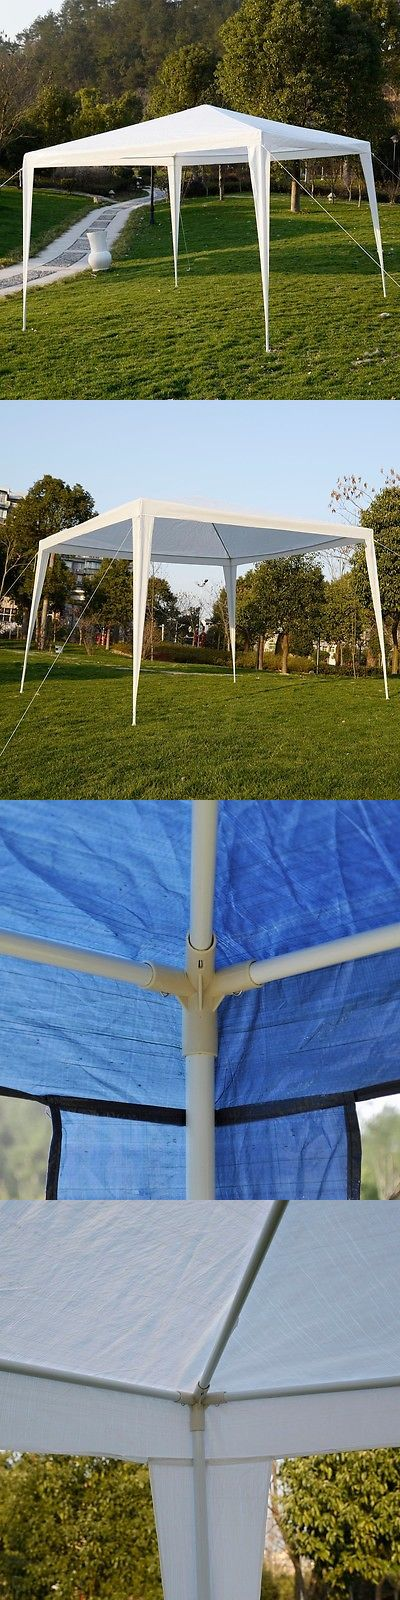 Other Tents and Canopies 179019: Apontus Outdoor Tent Canopy Gazebo, 10 X 10 (White) -> BUY IT NOW ONLY: $50.99 on eBay!